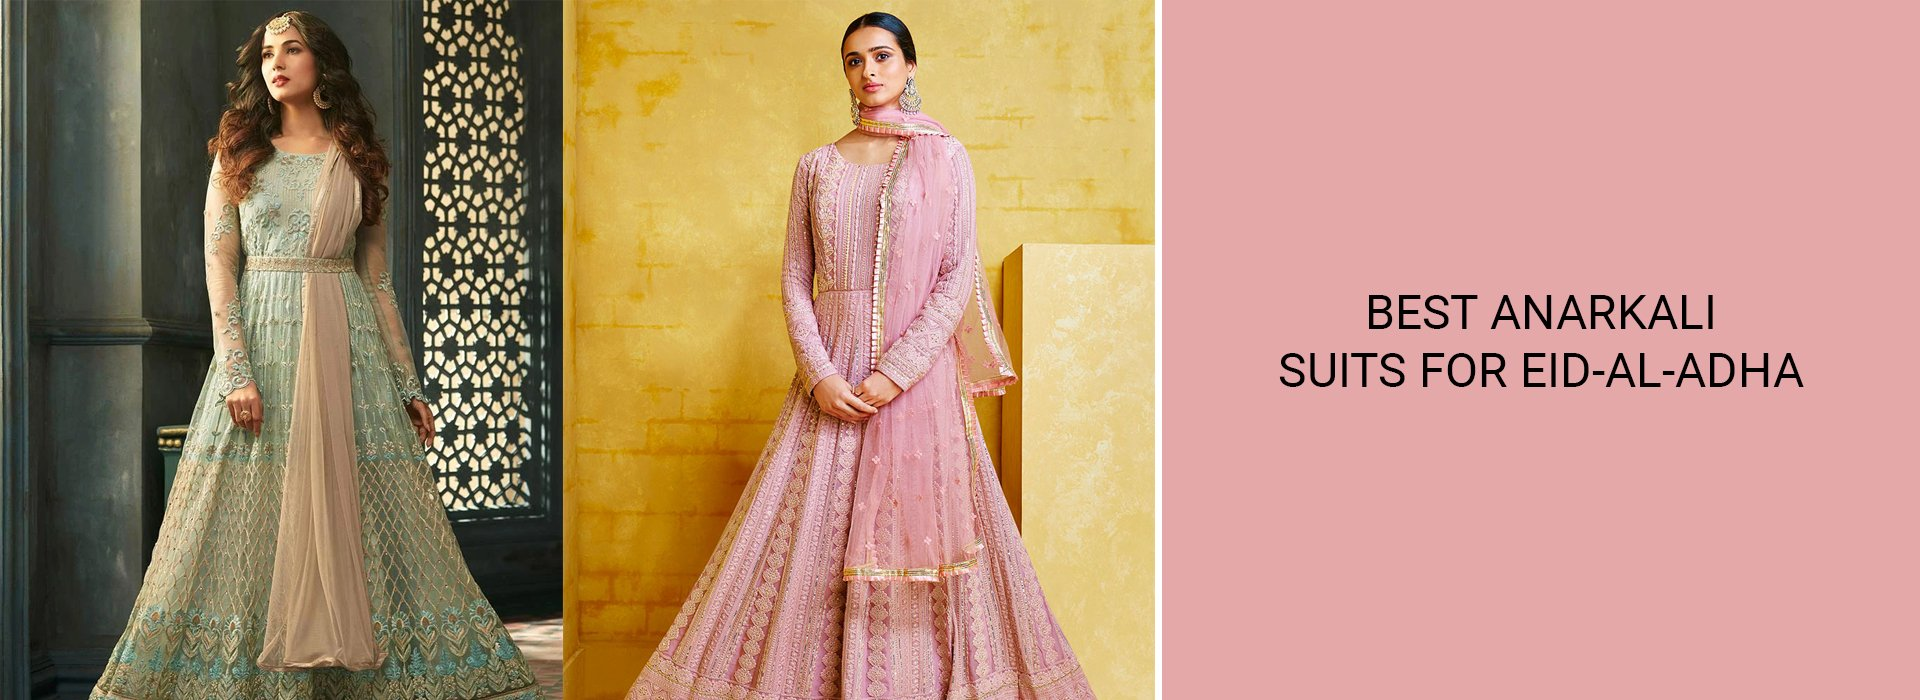 Best Anarkali Suits For Eid-Al-Adha